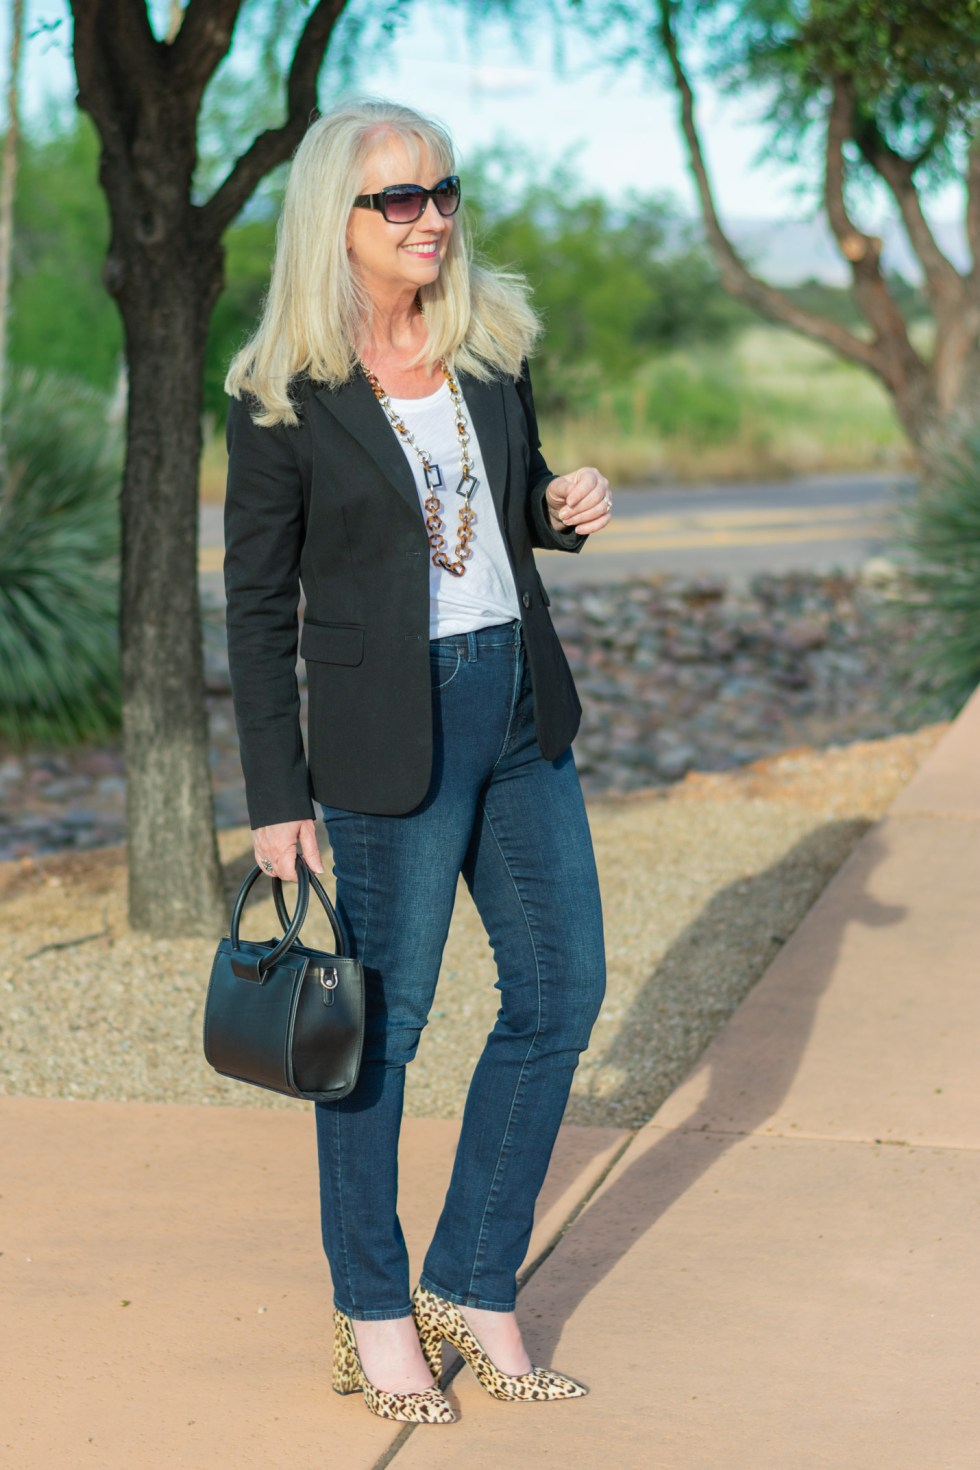 How to Style a Basic Black Blazer with a T-Shirt